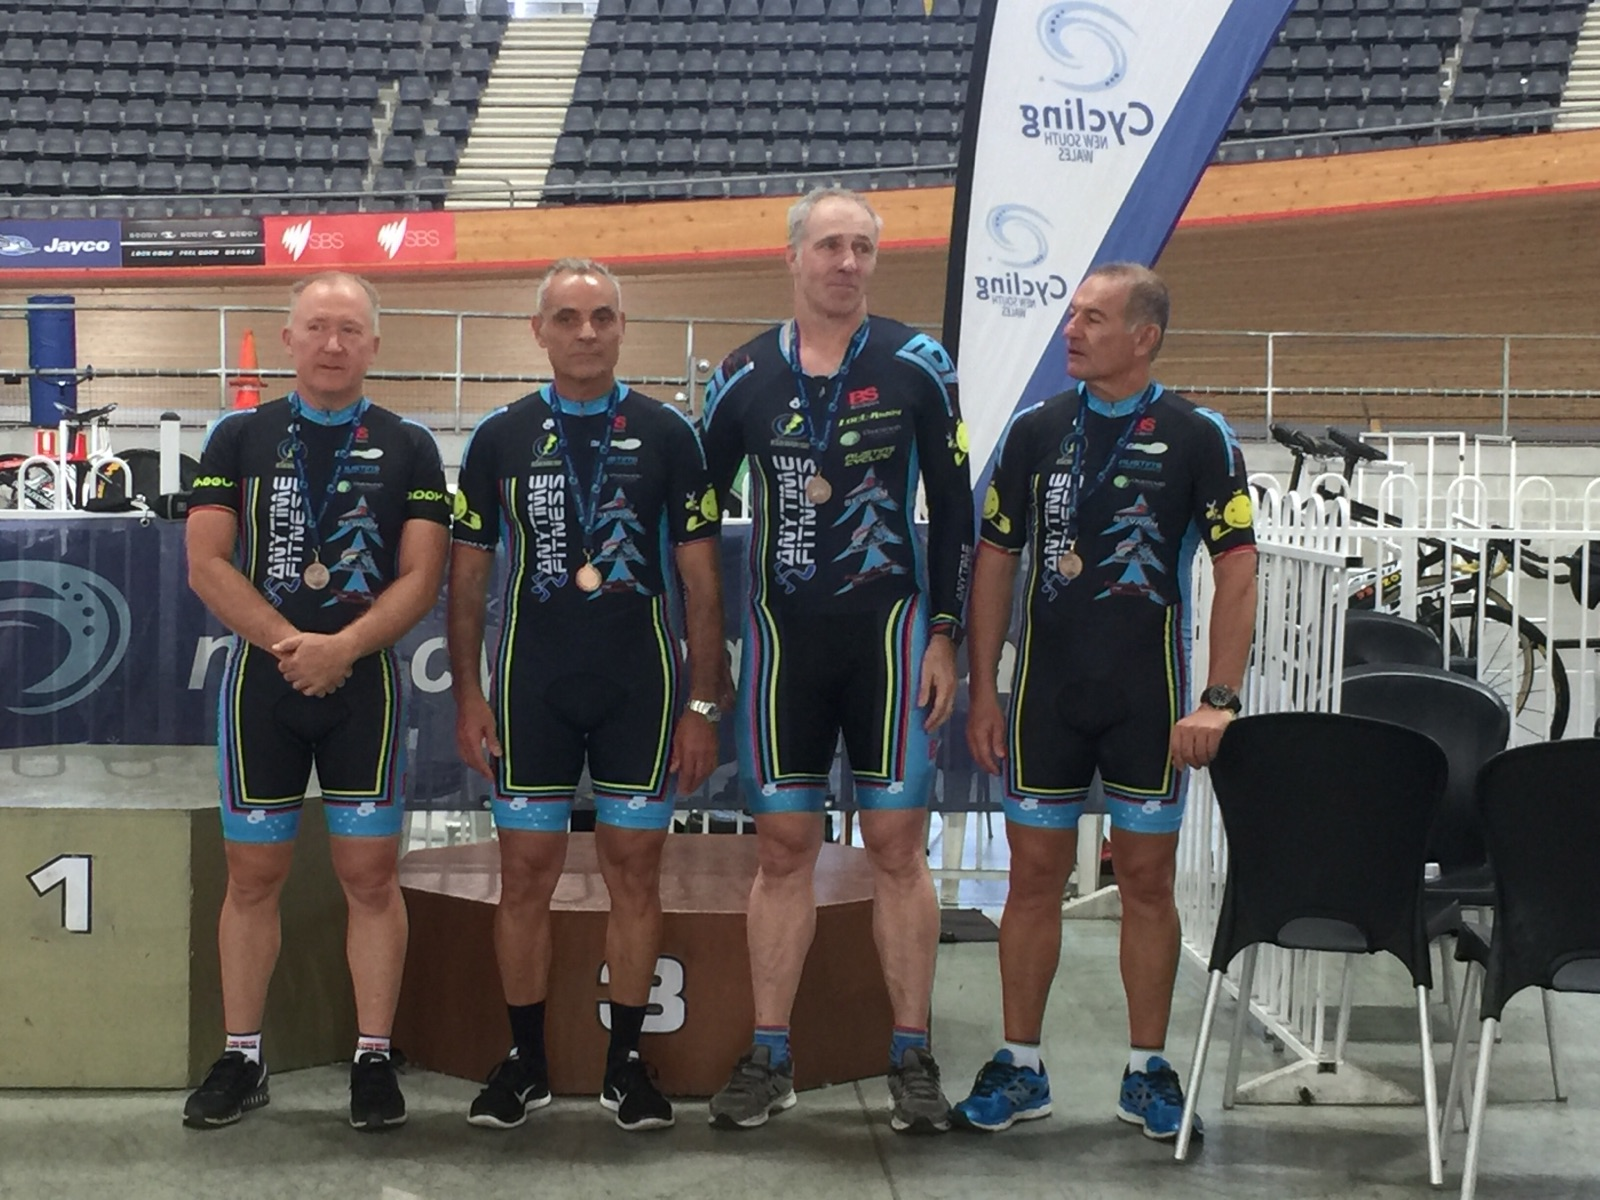 NSW Masters Track Championships - BiciSport 150+ Teams Pursuit Team took the Bronze medal